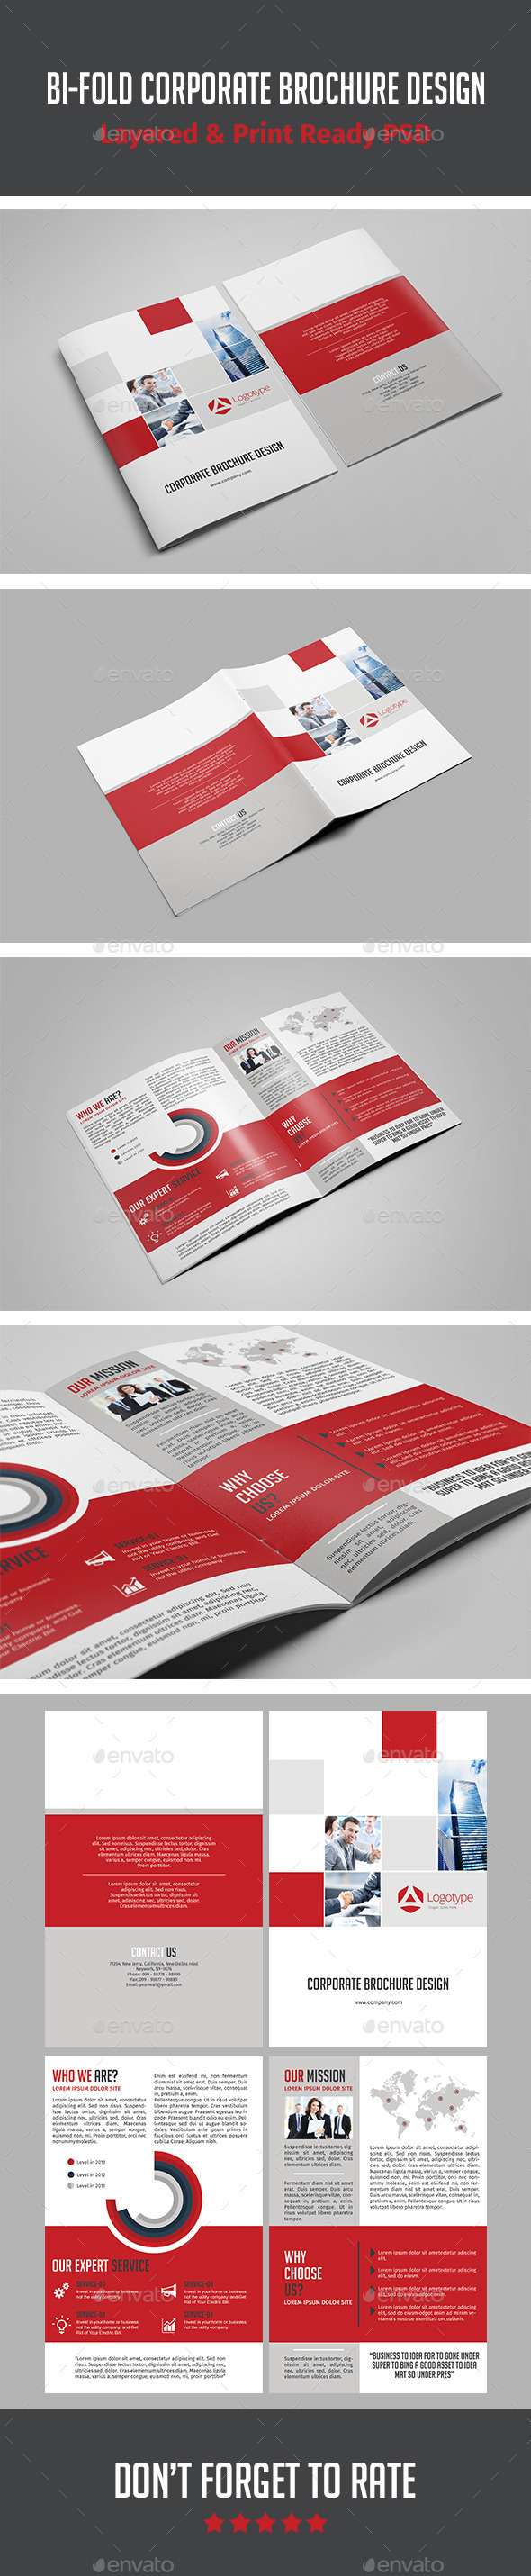 Bi-fold Corporate Brochure Design - Corporate Brochures